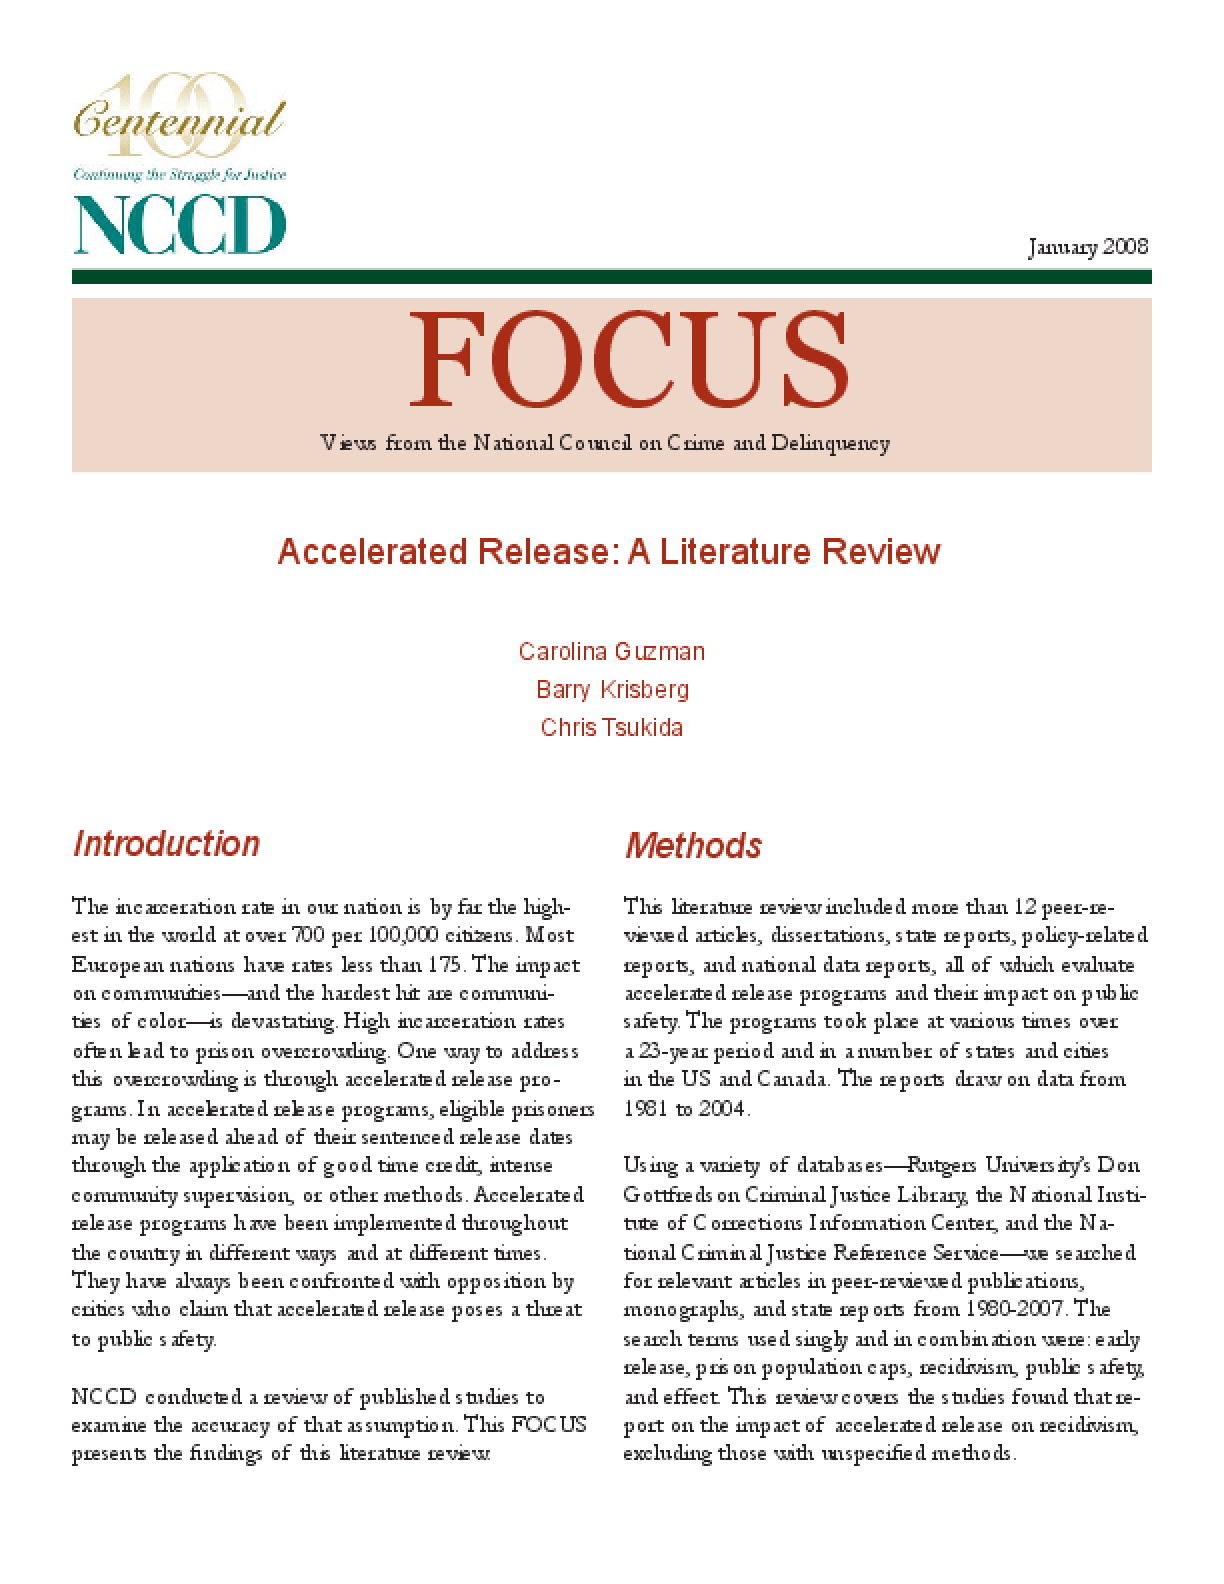 Accelerated Release: A Literature Review (FOCUS)